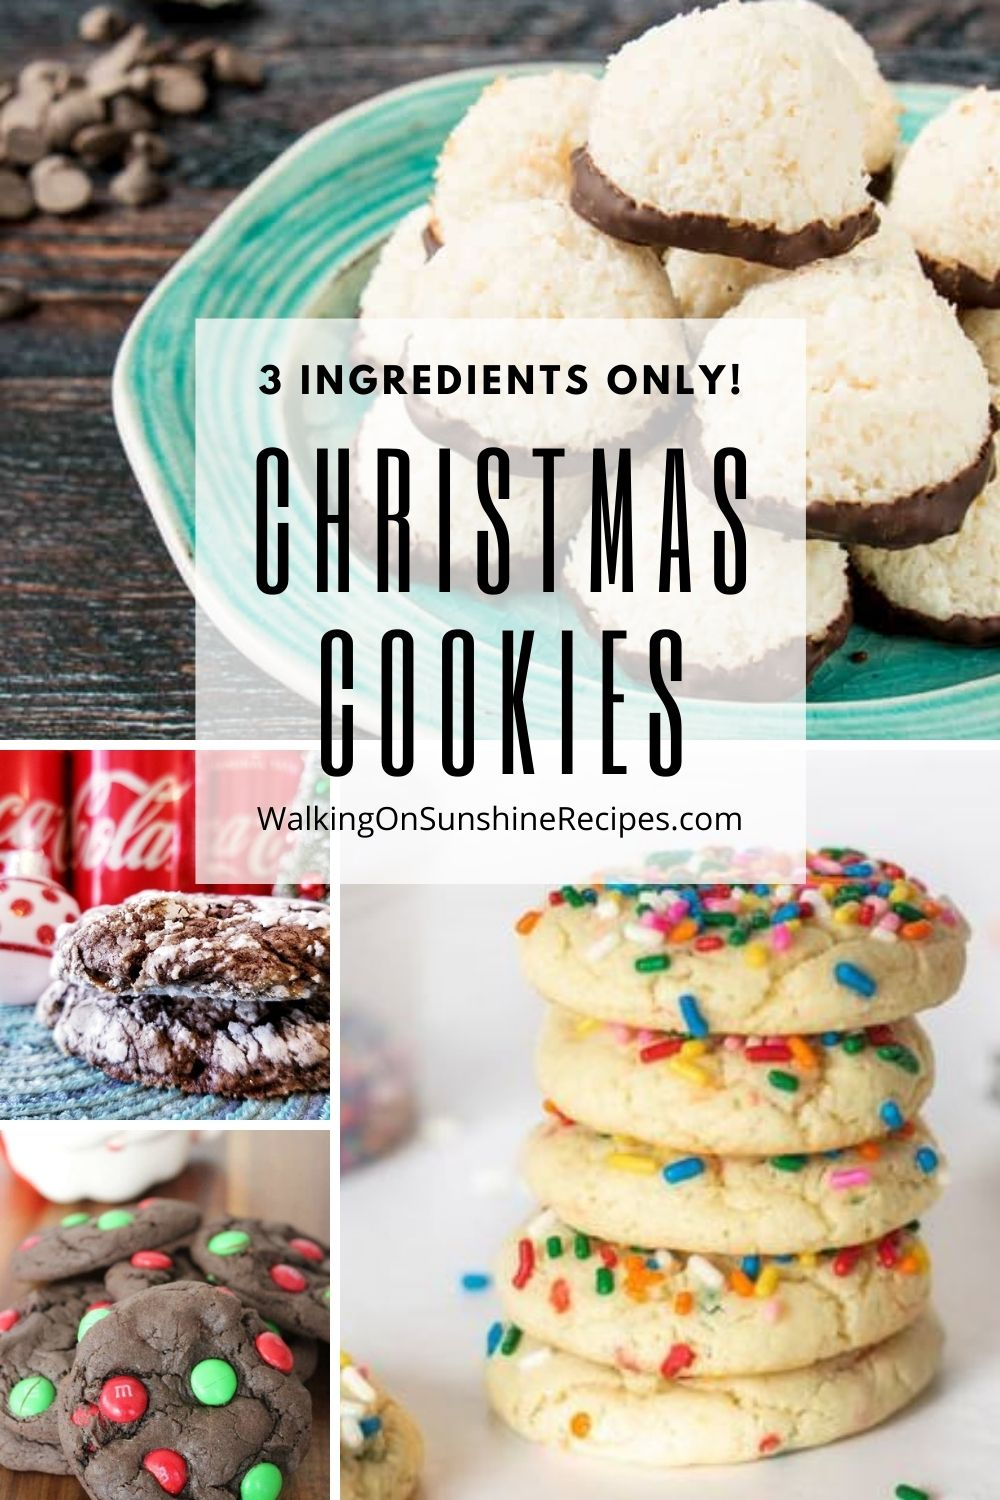 Sprinkle cookies, chocolate cookies and coconut cookies all made with only 3 ingredients.